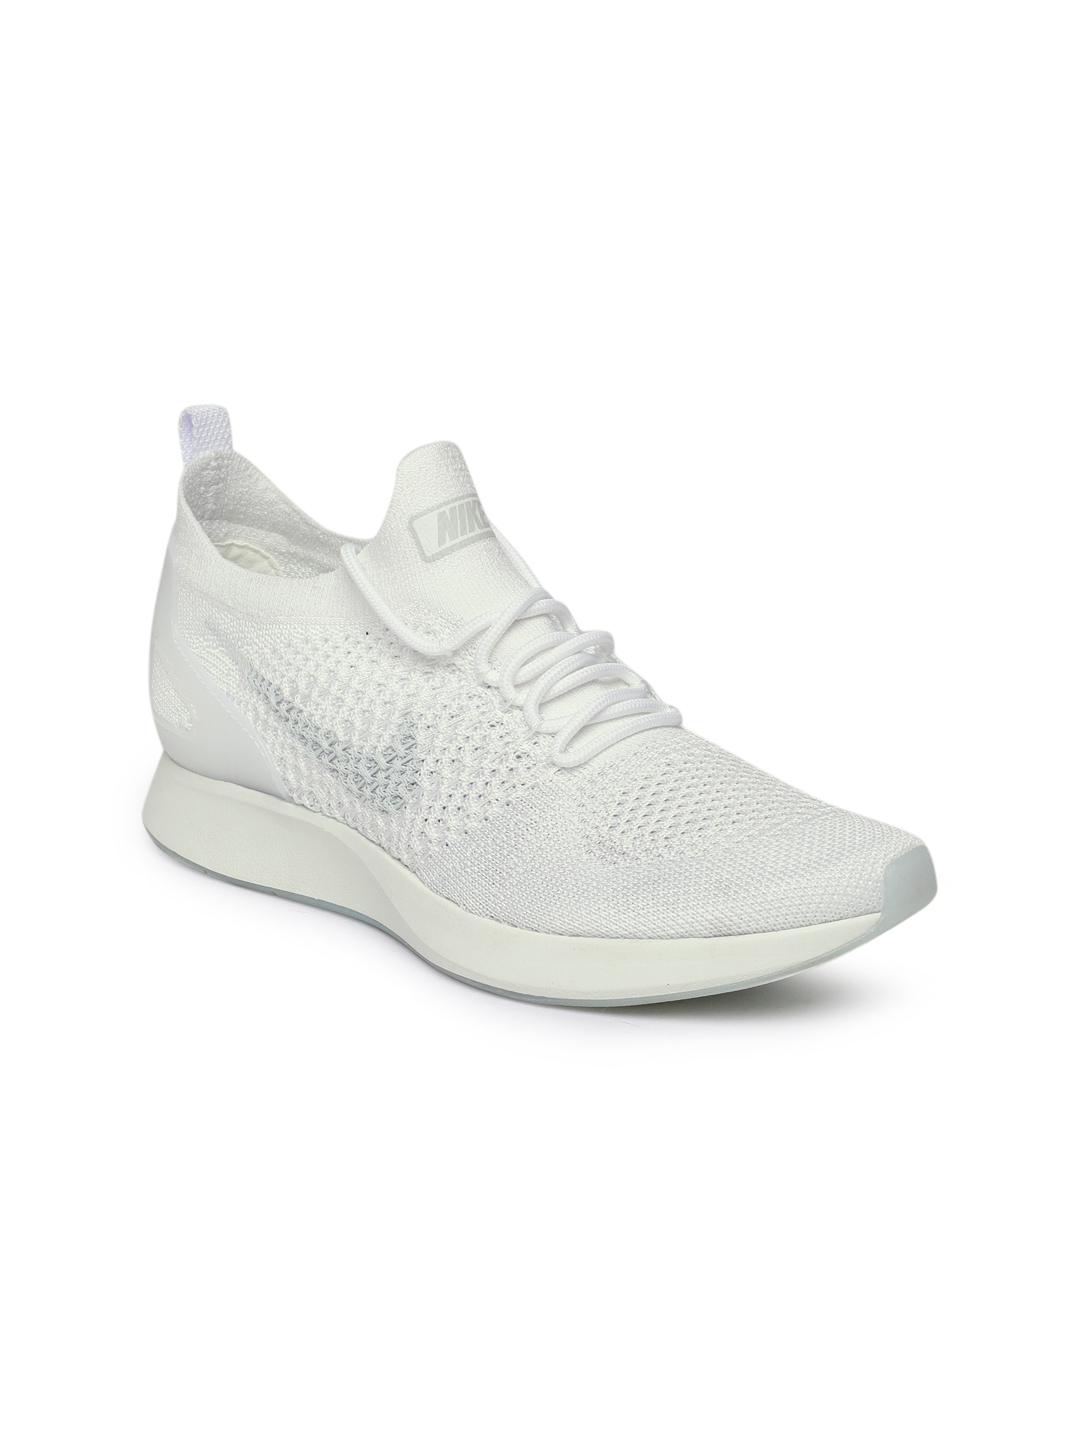 eb462abeea182 Buy Nike Women White Air Zoom Mariah Flyknit Racer Sneakers - Casual ...